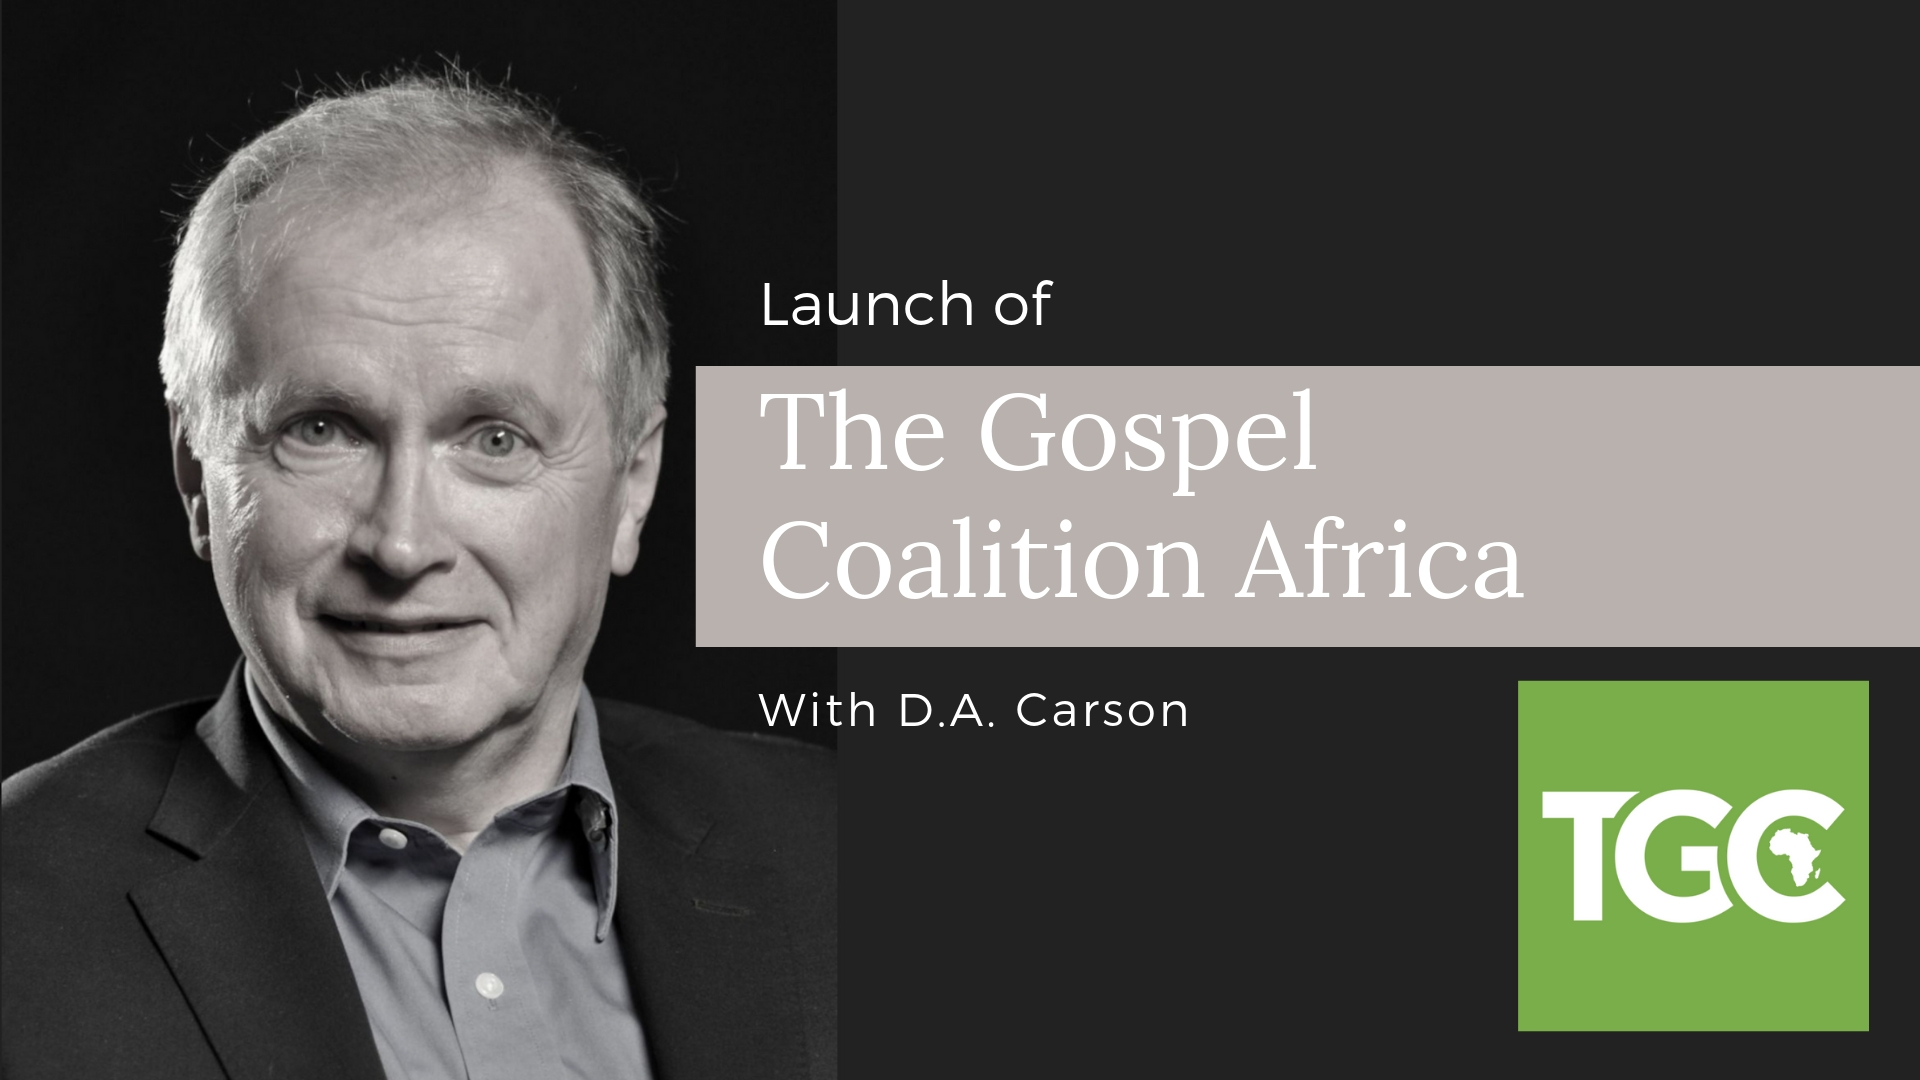 Launch of the Gospel Coalition